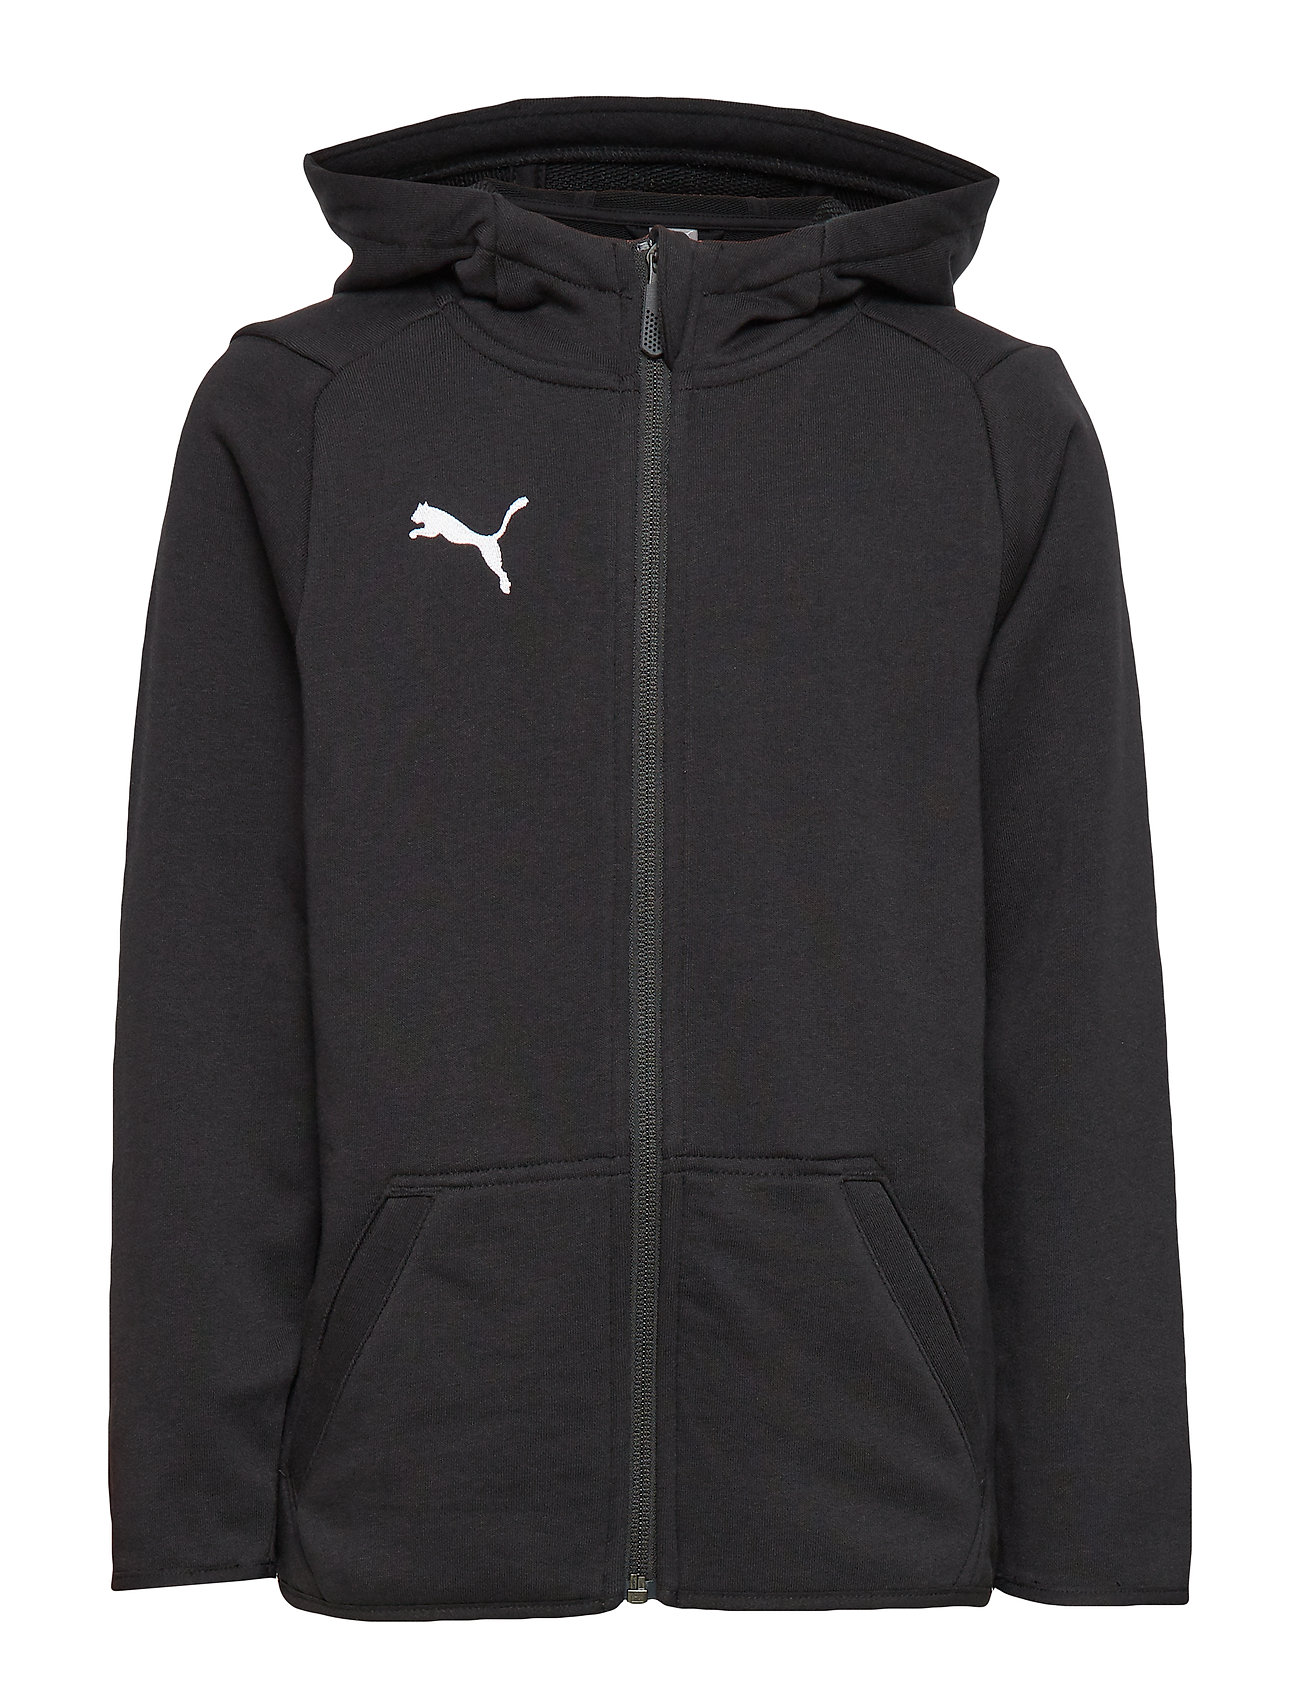 PUMA LIGA Casuals Hoody Jacket Jr - PUMA BLACK-PUMA WHITE